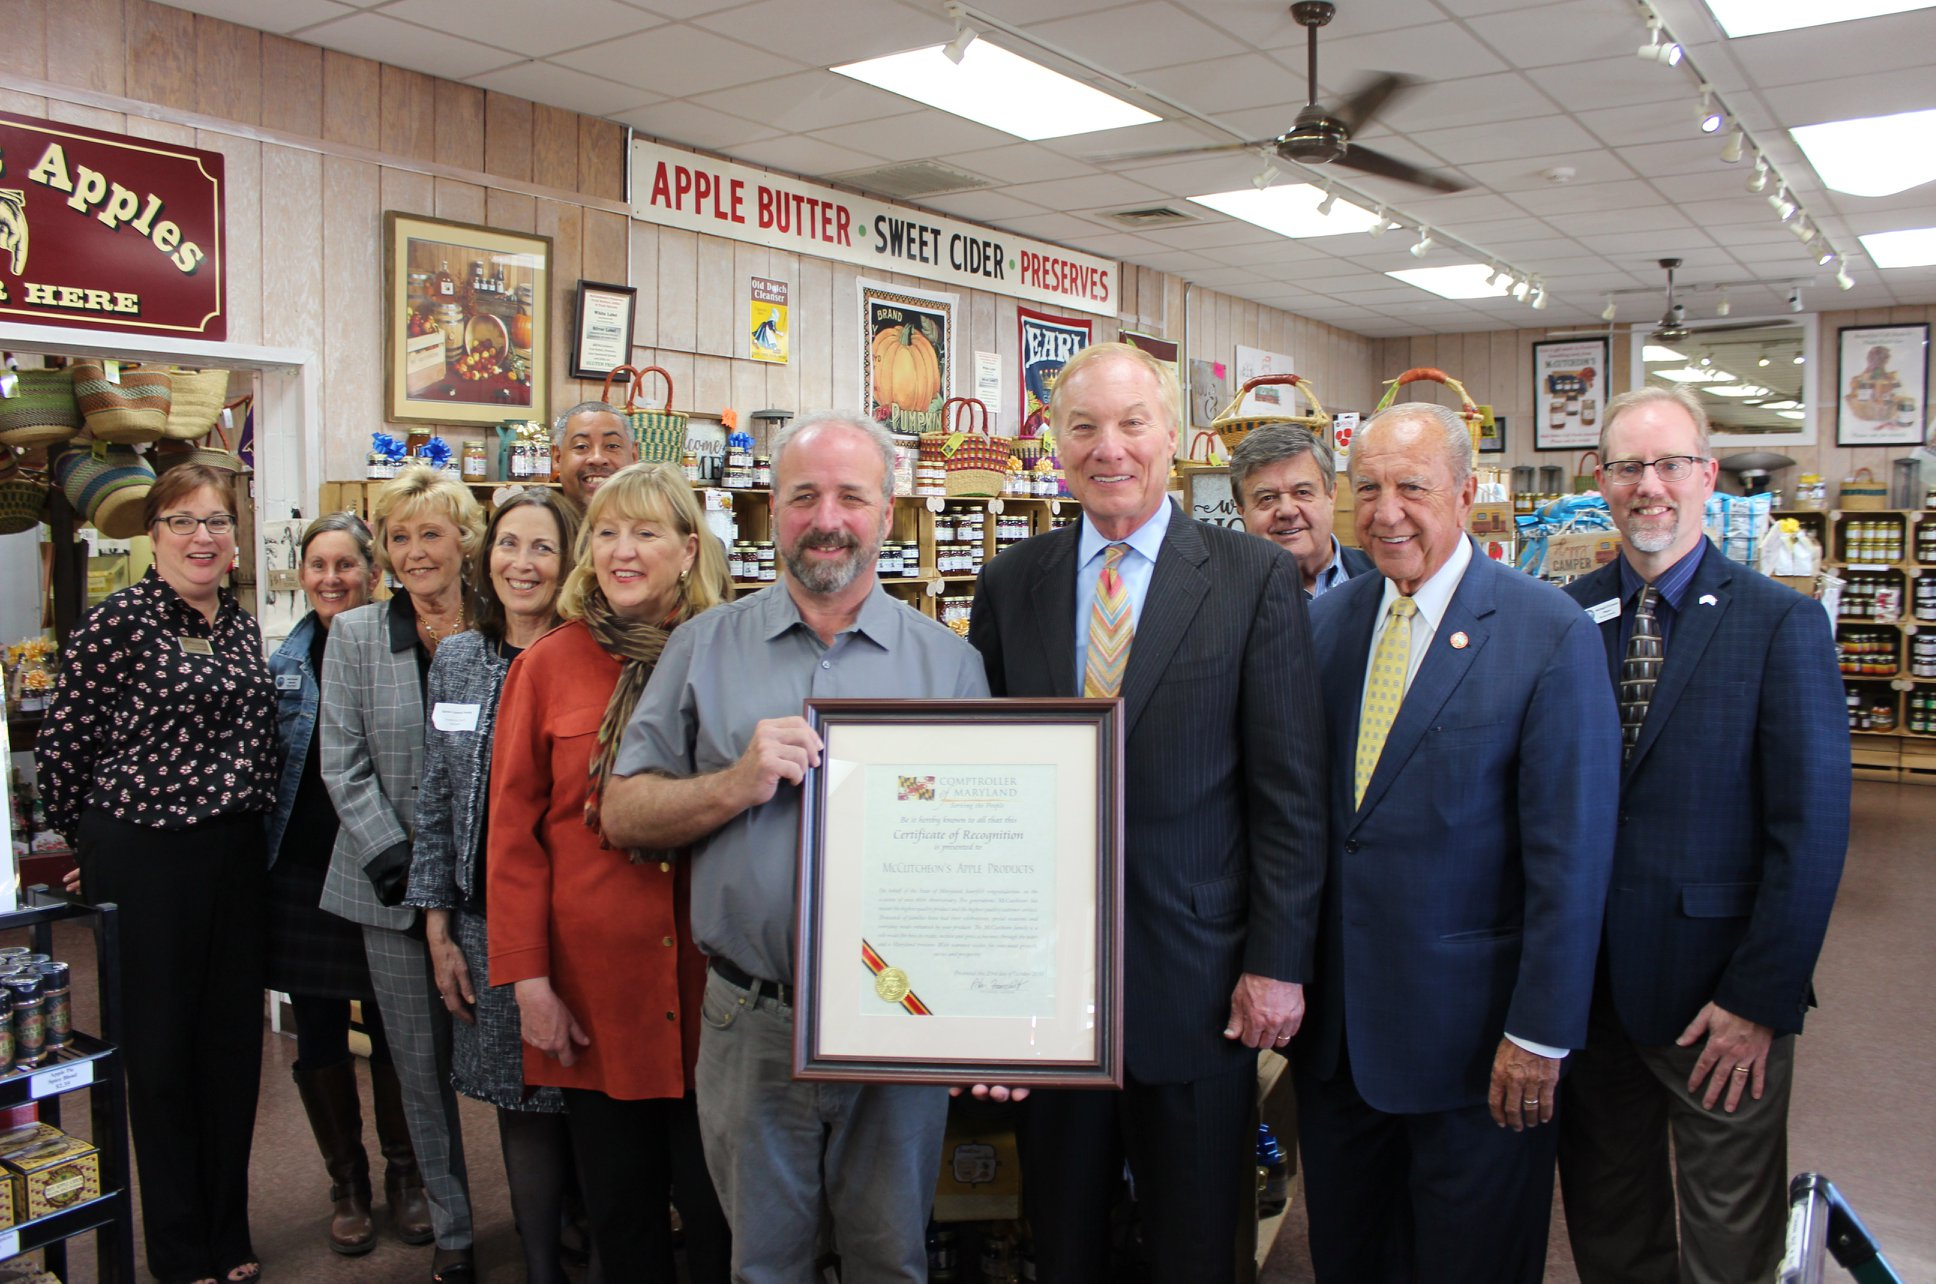 Tamar and other local representatives celebrating McCutcheon's 80th anniversary with Comptroller Peter Franchot